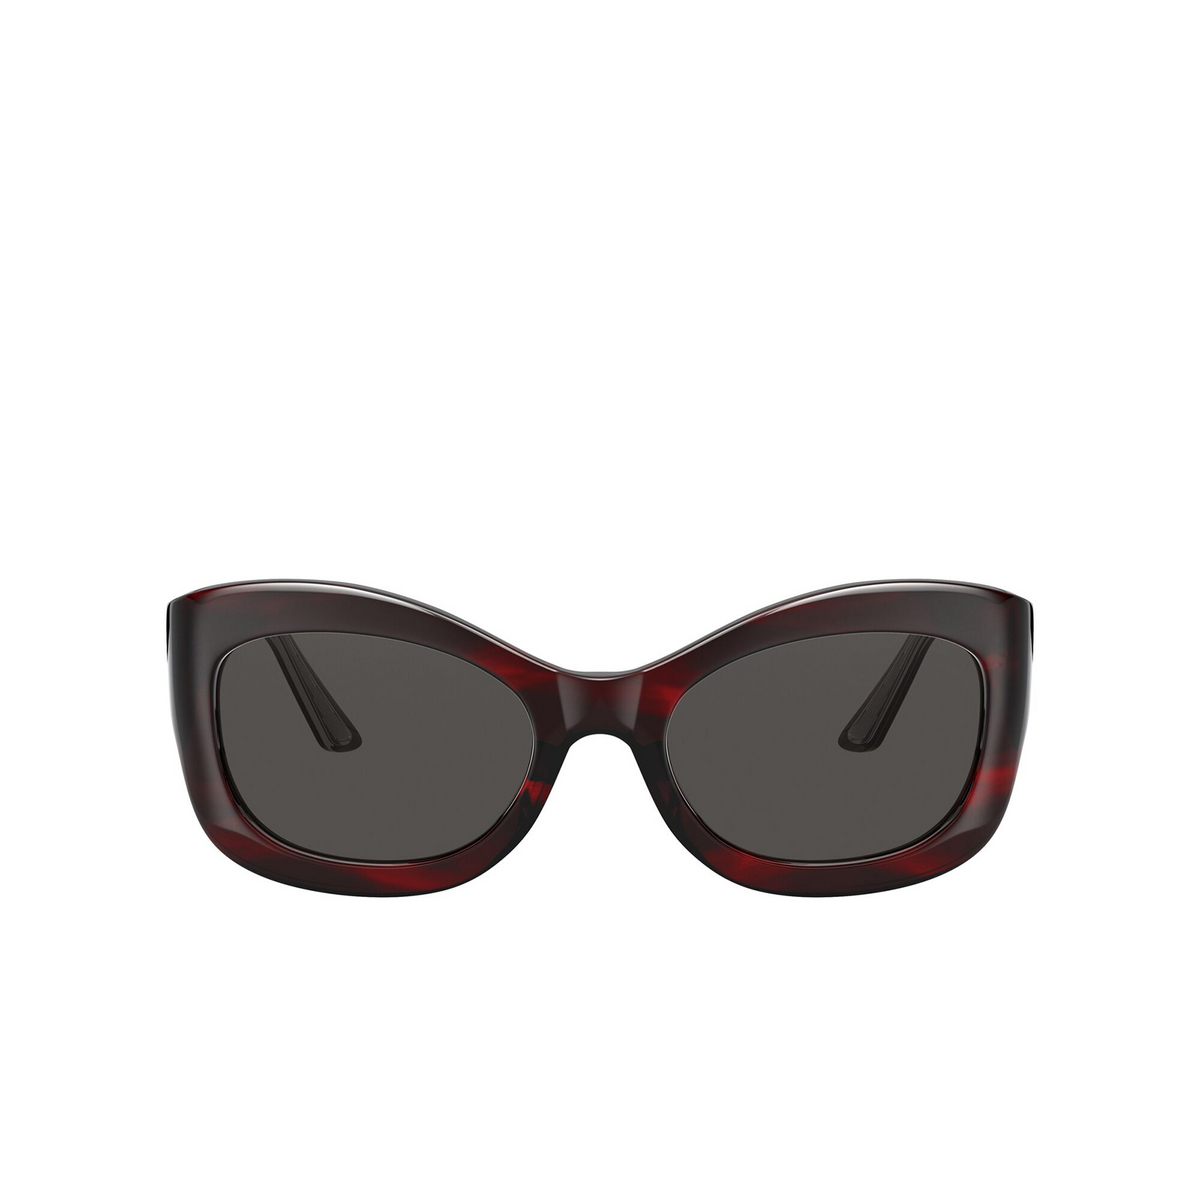 Oliver Peoples® Butterfly Sunglasses: Edina OV5441SU color Bordeaux Bark 167587 - front view.